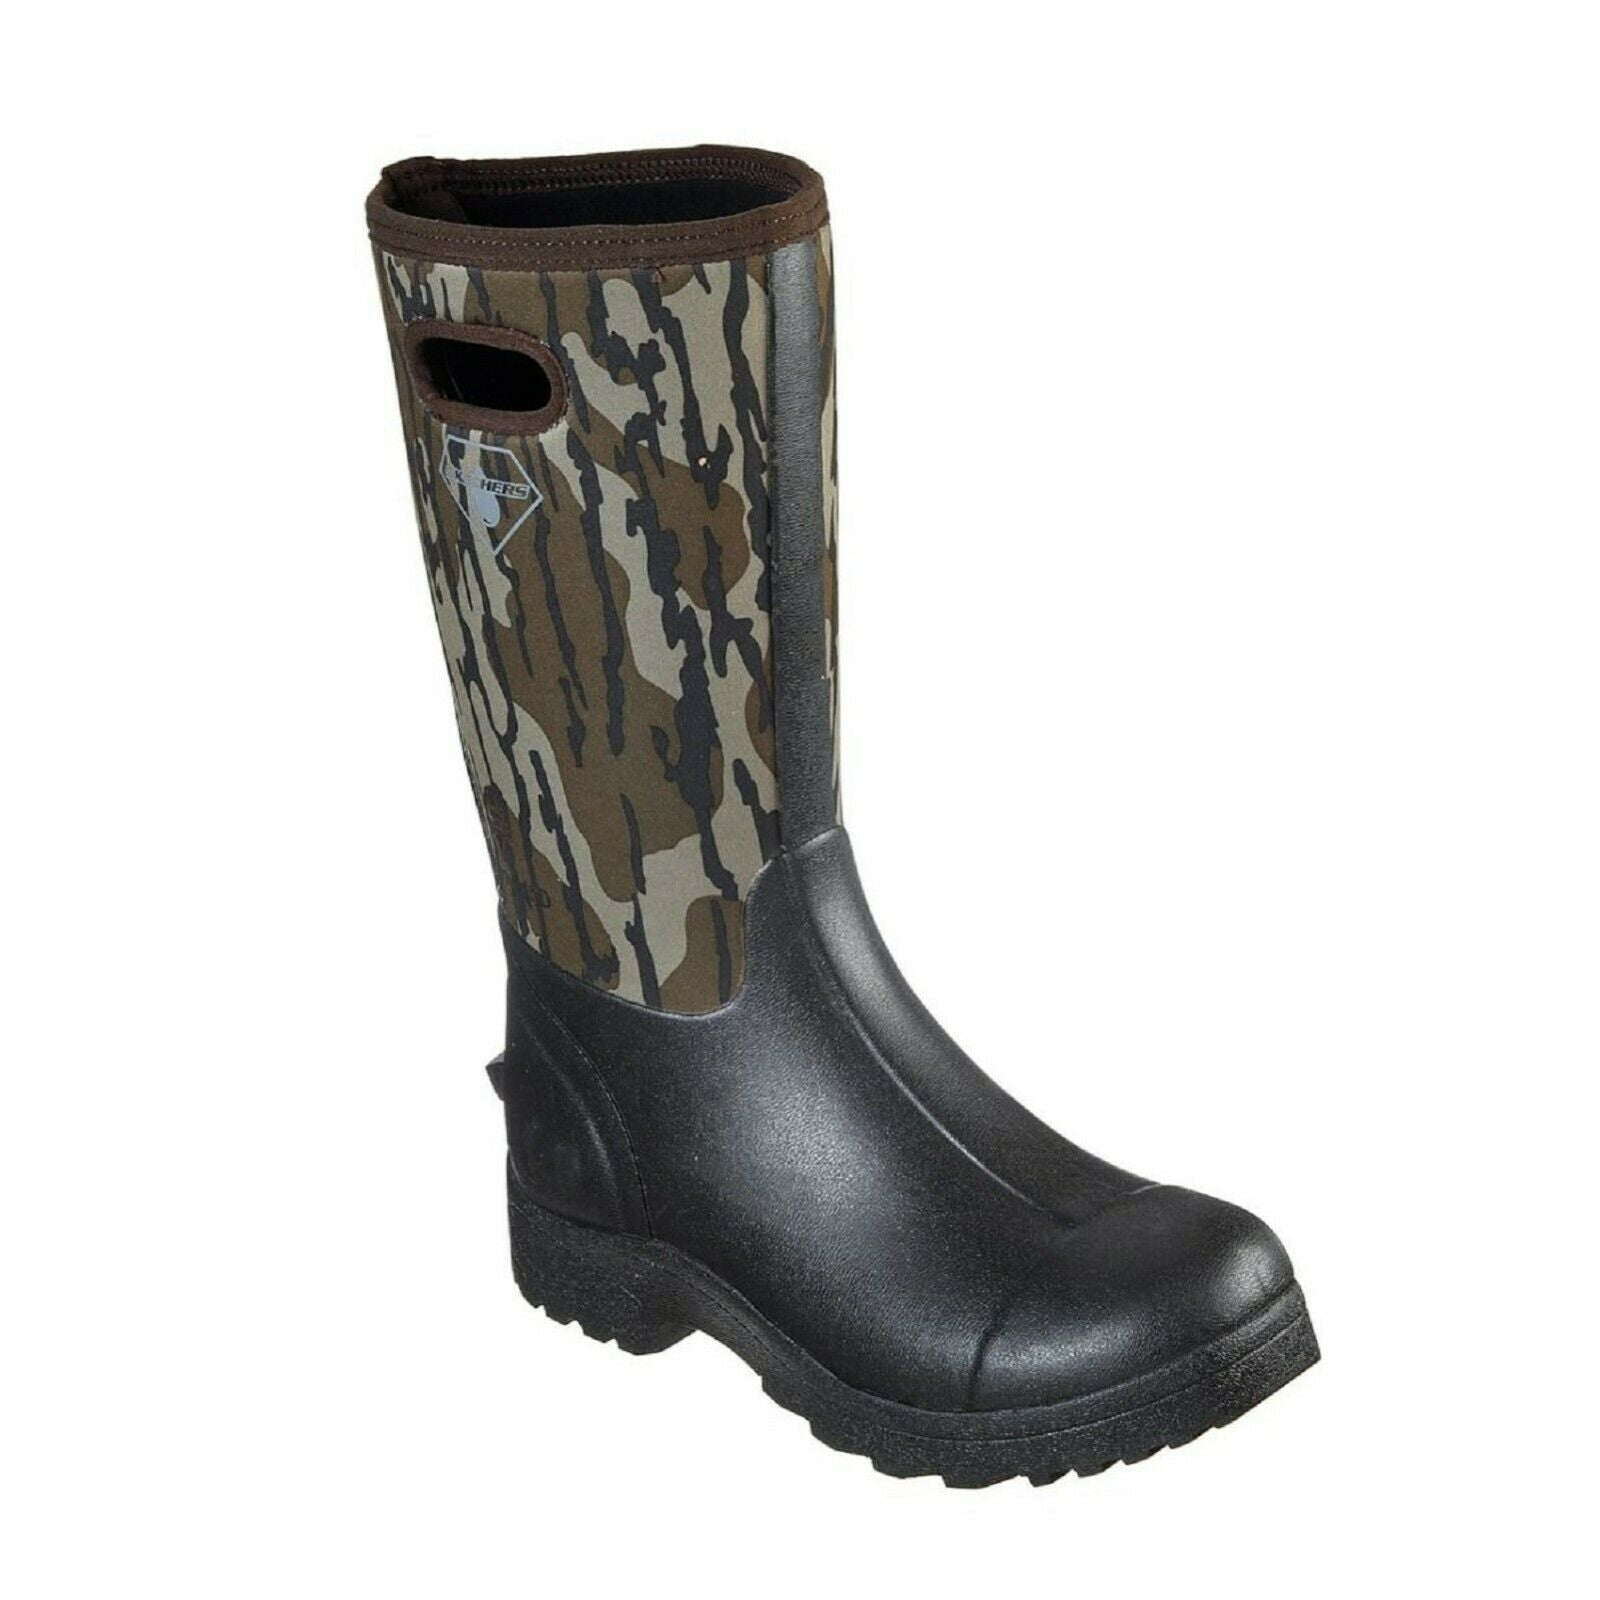 Mens Skechers WEIRTON 77543 CAMO Camo Slip-On Mid-Calf Work Boot Shoes